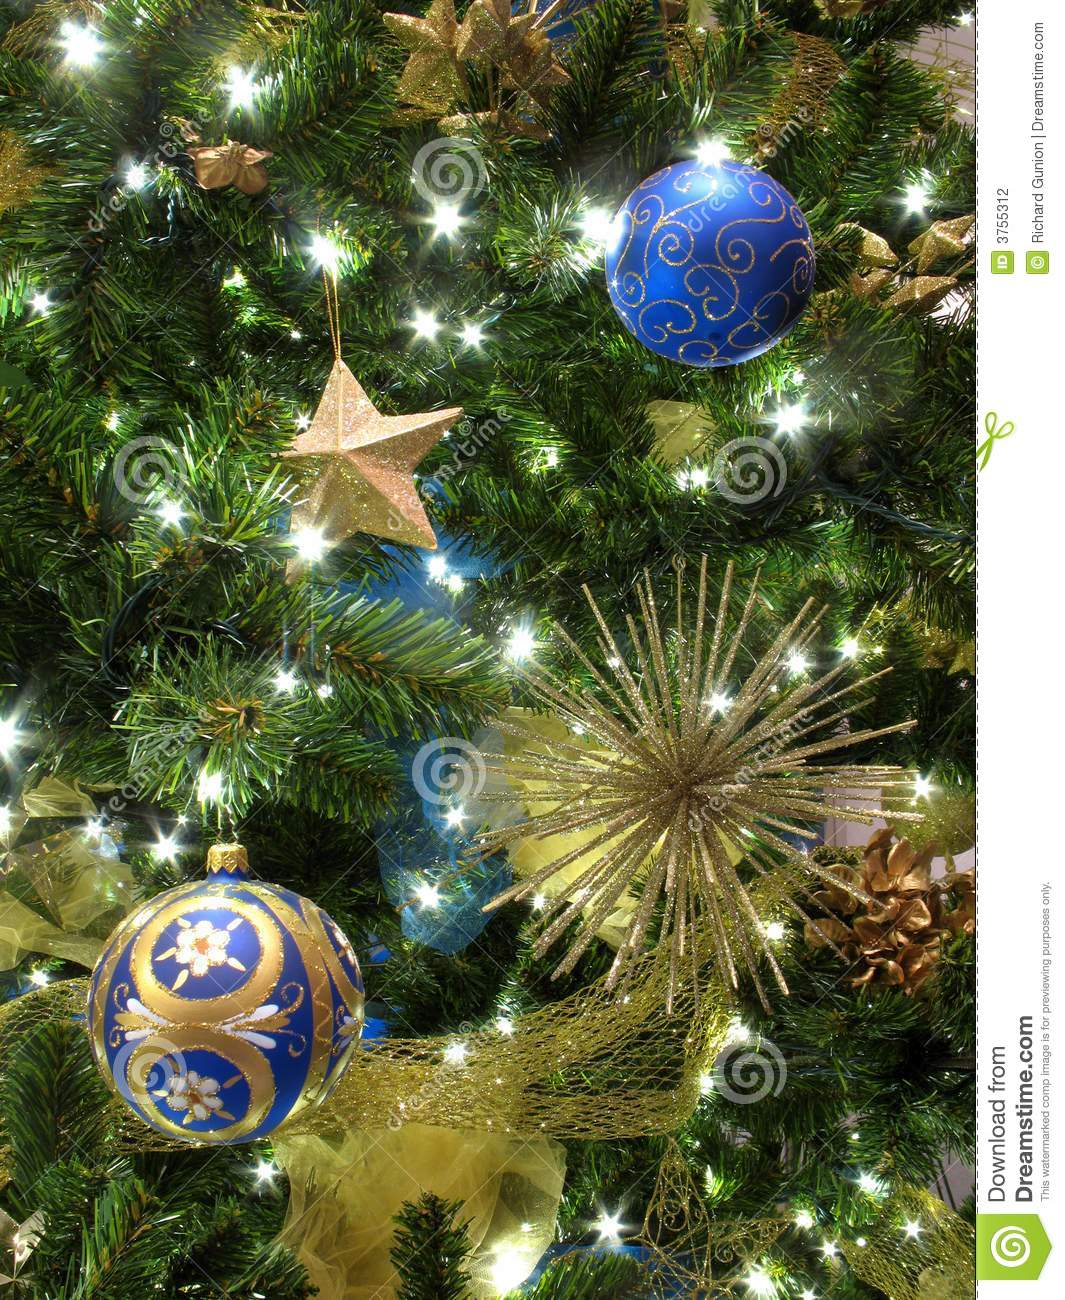 Blue and Gold Ornaments stock photo. Image of star, illumination ...